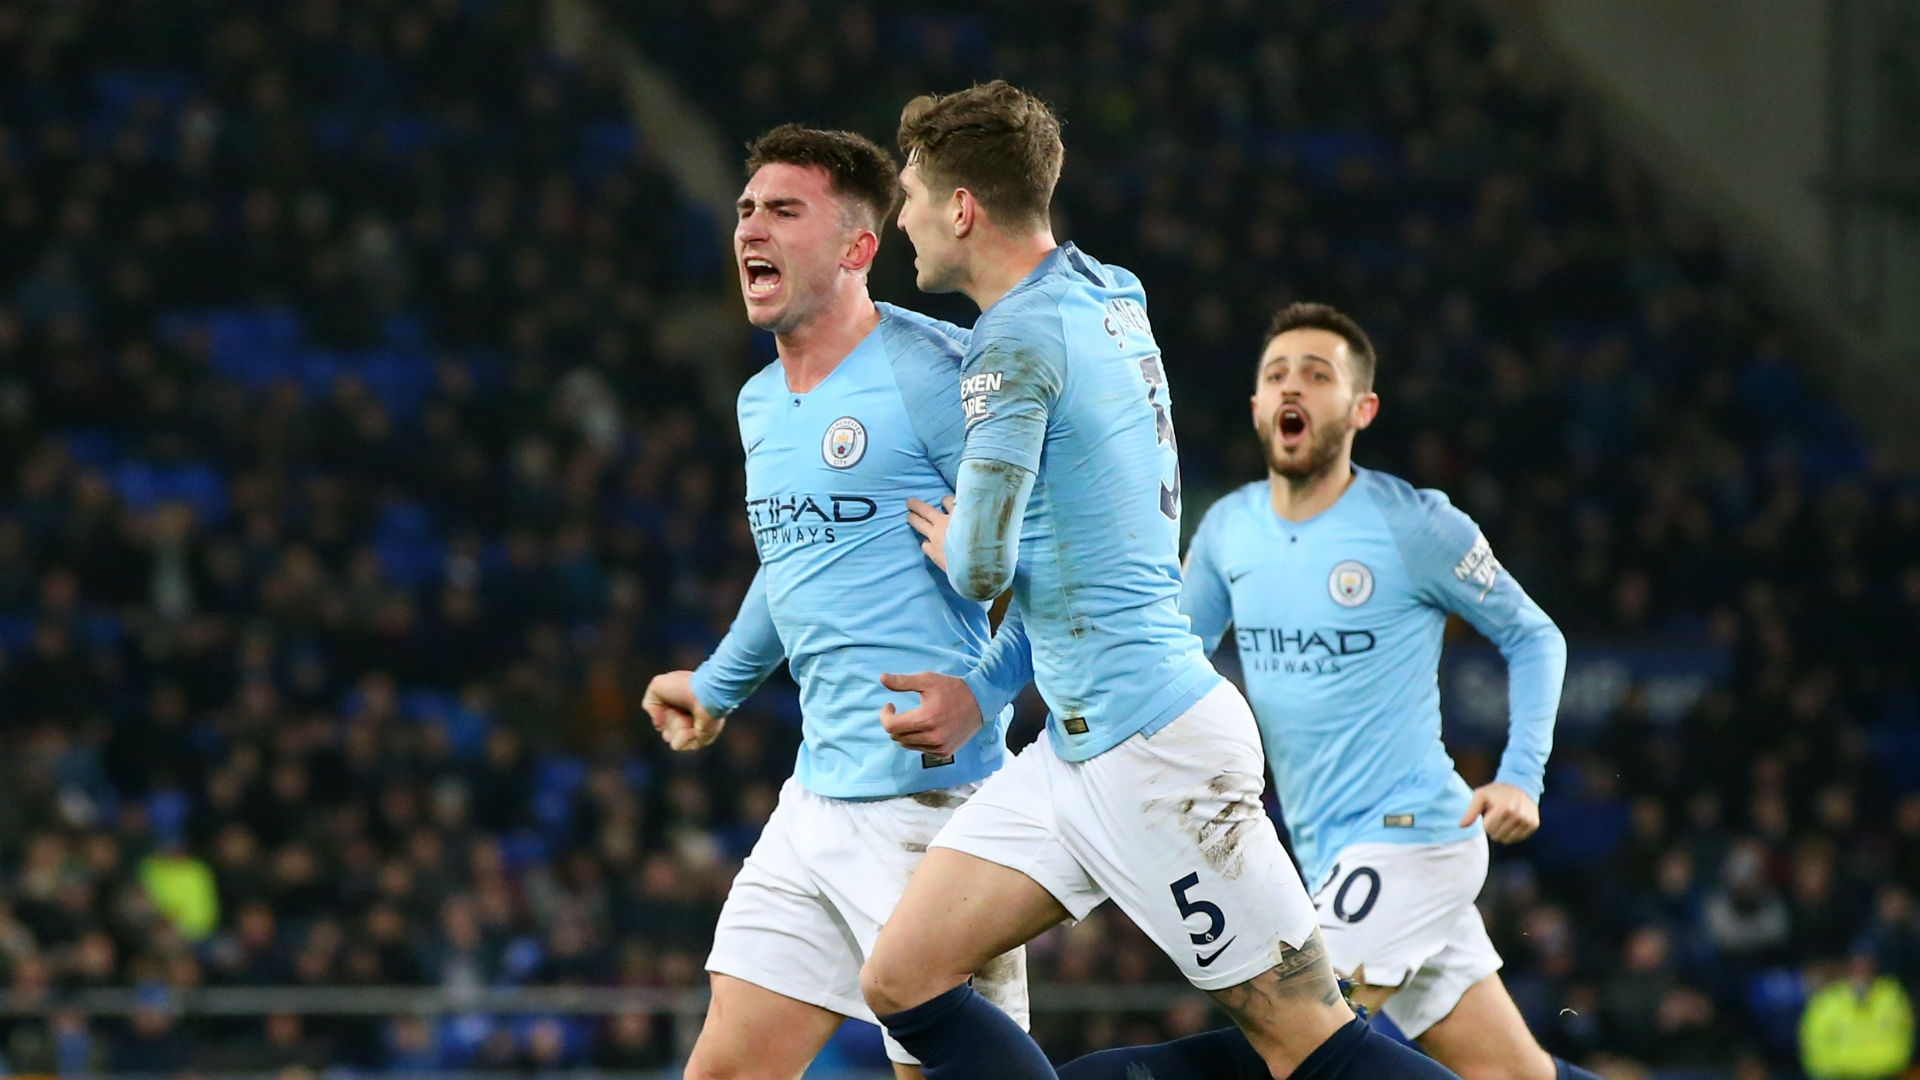 Laporte celebrates his stunning header that gave City the lead against Everton in midweek.